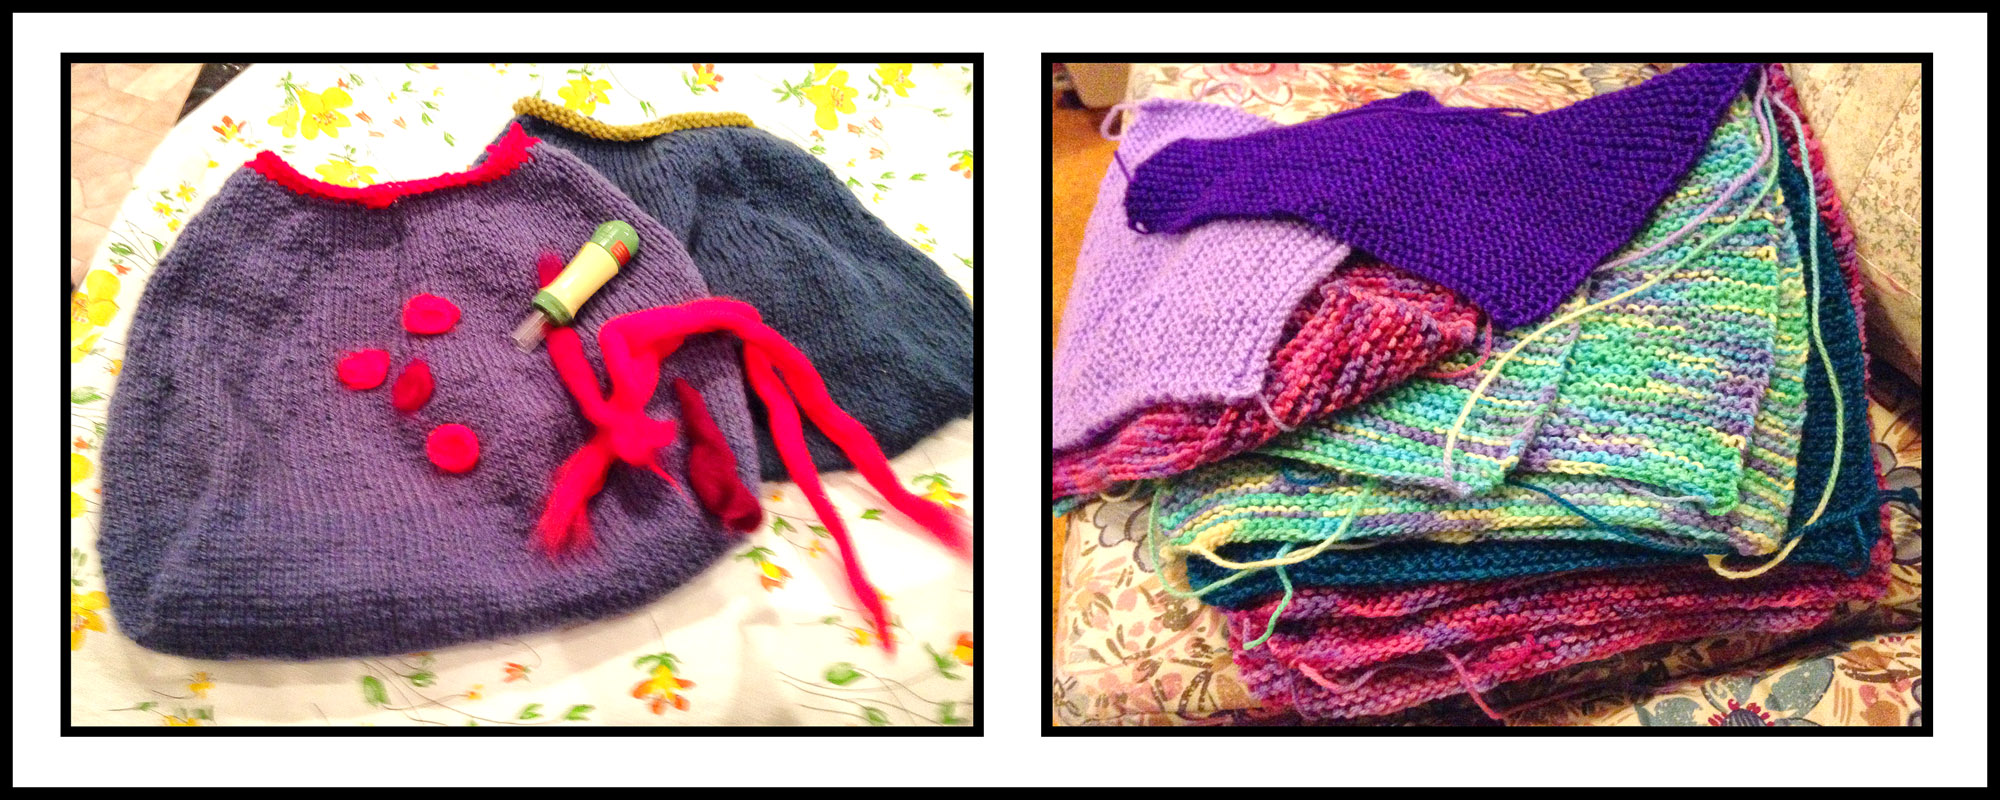 This week's knitted bags, along with some squares for Wrap with Love. Who's been a busy knitter, then?